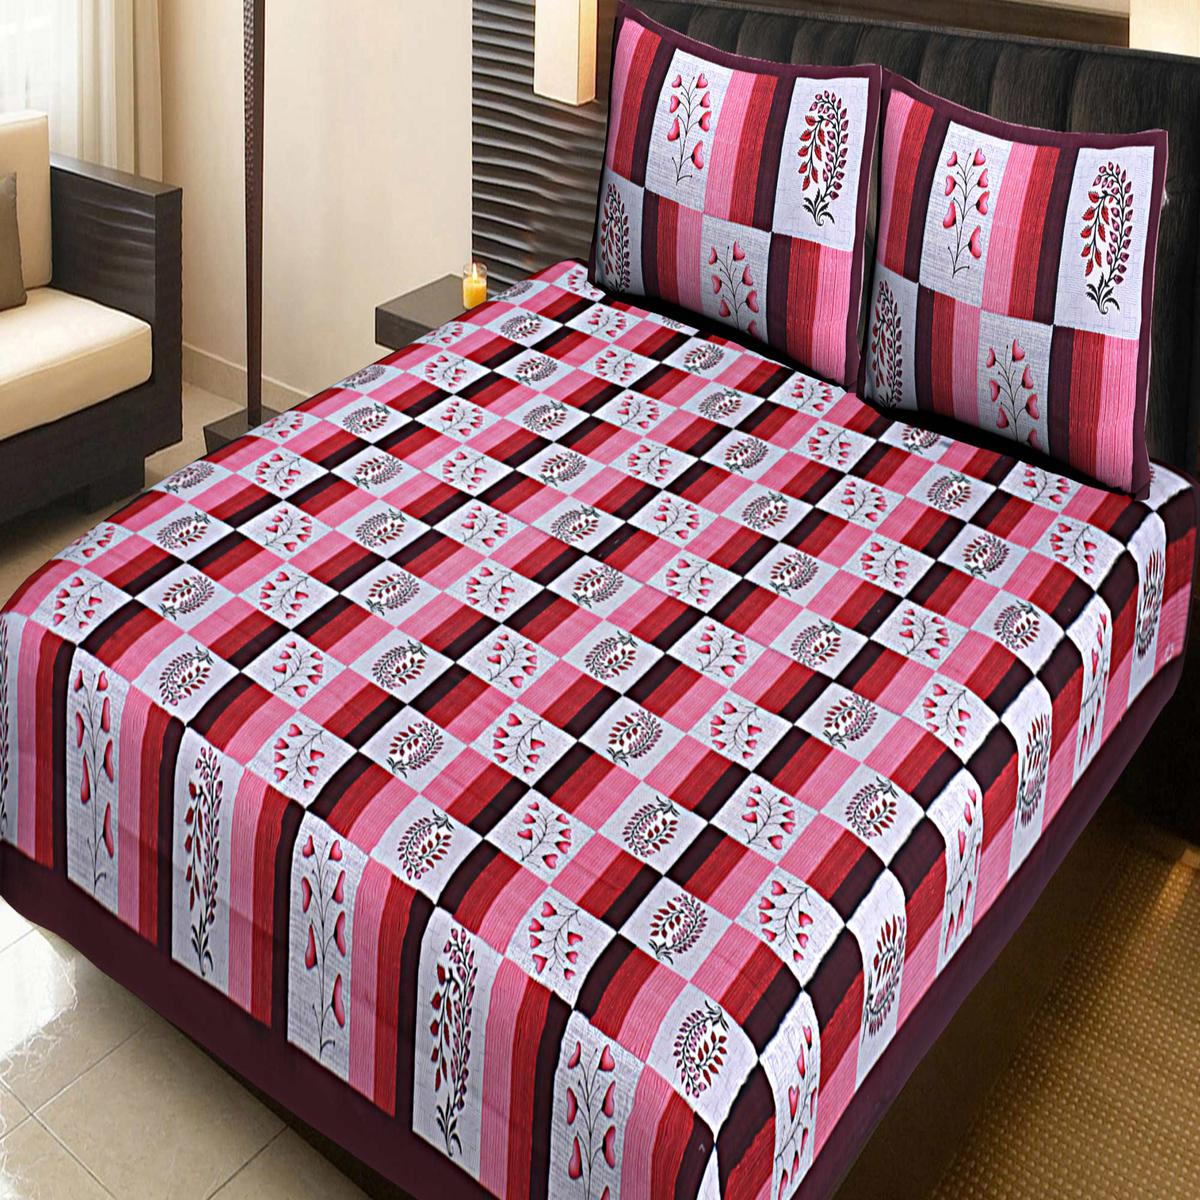 AJ Home - Maroon Traditional Jaipuri 100% Cotton Double Bedsheet with 2 Pillow Covers